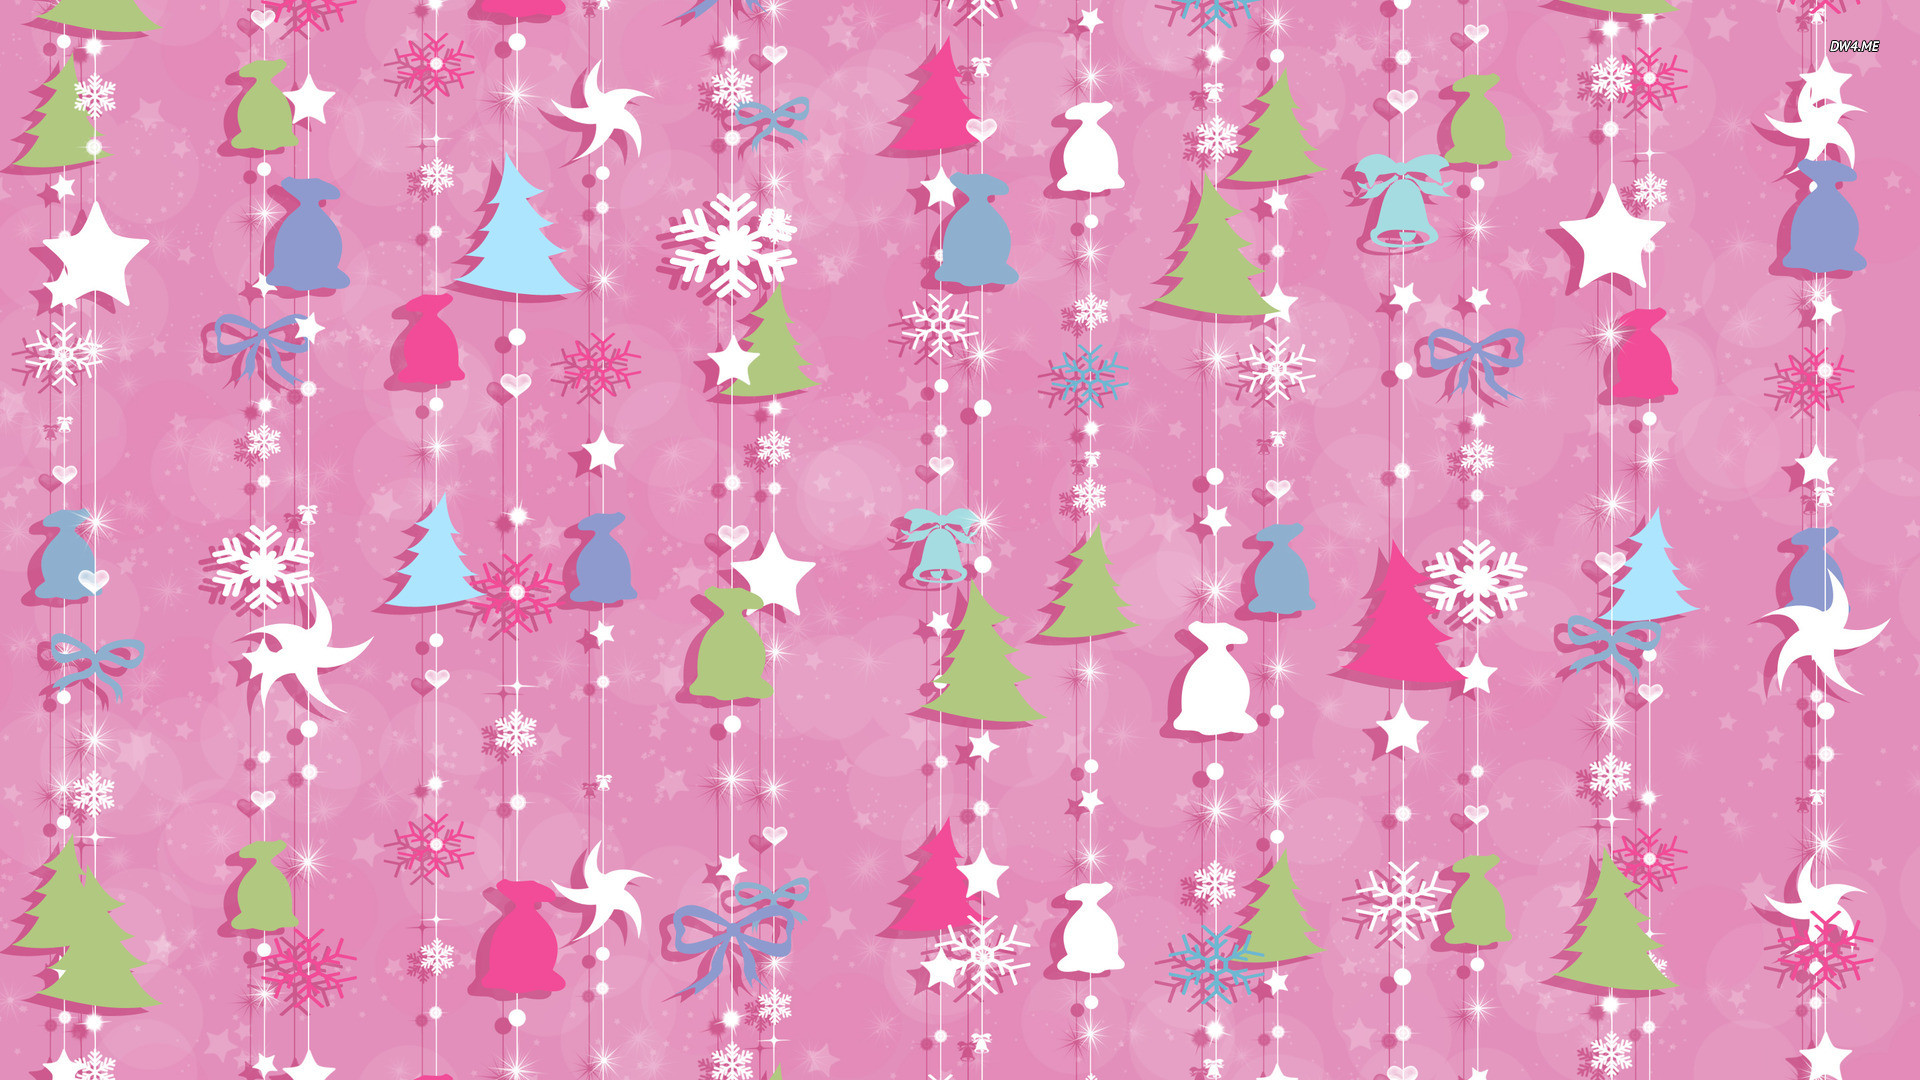 1920x1080 Great Christmas Wallpaper Sites images Christmas Pattern HD wallpaper and  background photos